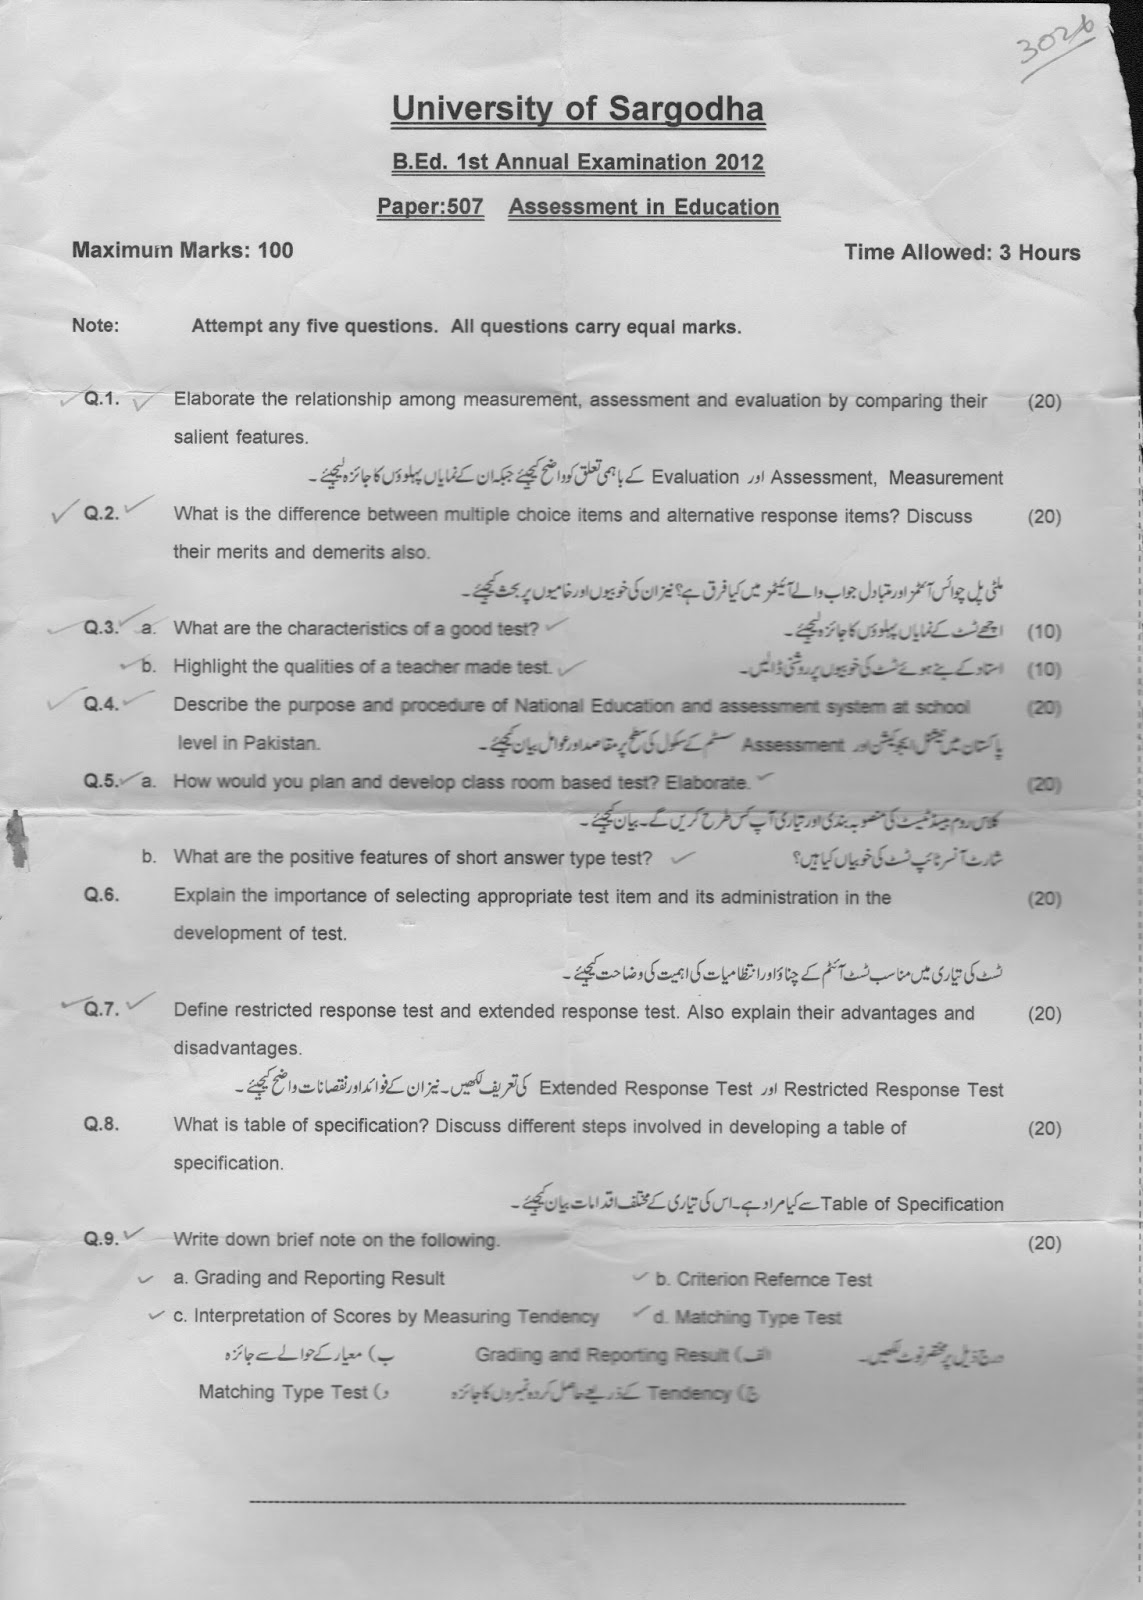 restricted and extended essays Ment, including mathematical problems and artistic «produc- tions essay questions are often divided into two types: extended re- sponse questions and restricted response questions extended response questions other than stating the topic, extended response questions leave students free to determine the content and.